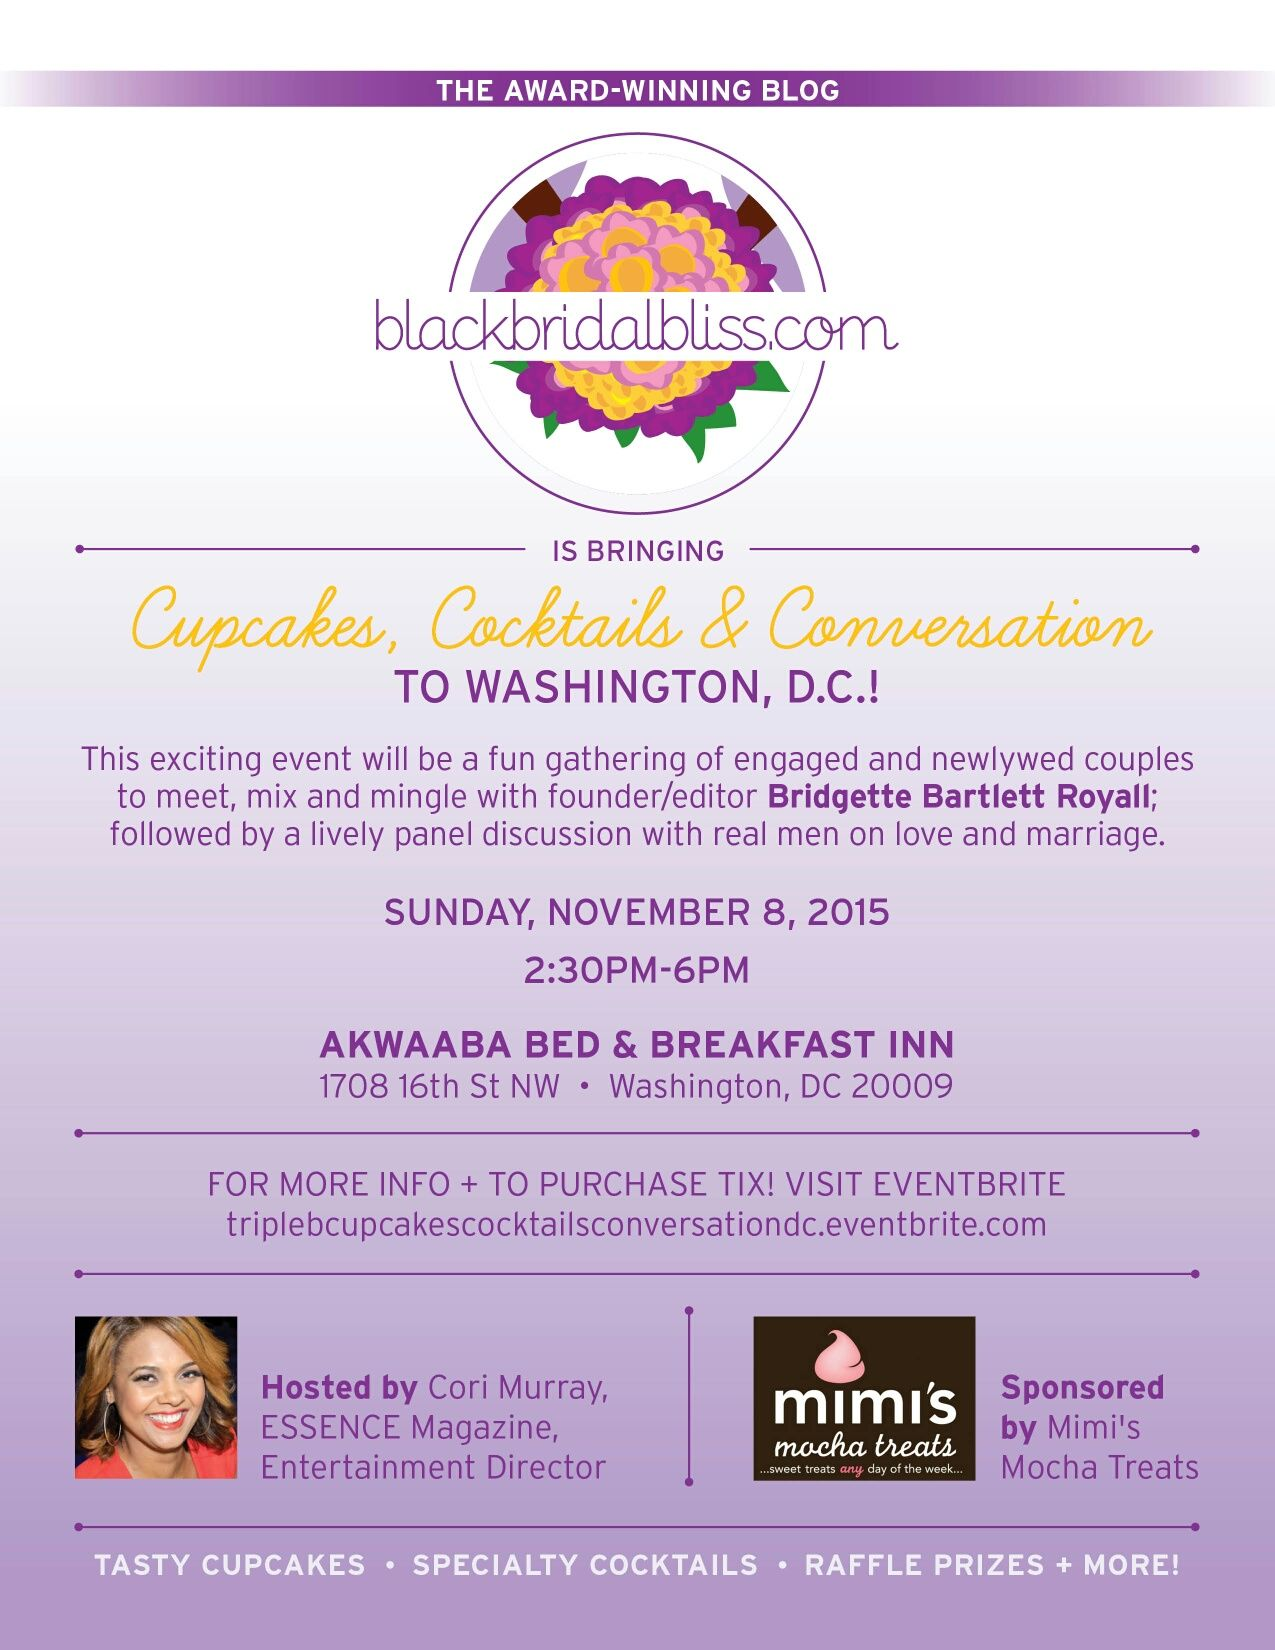 Cupcakes, Cocktails and Conversation is coming to Washington D.C! Find out more info at http://bit.ly/1OpEekc